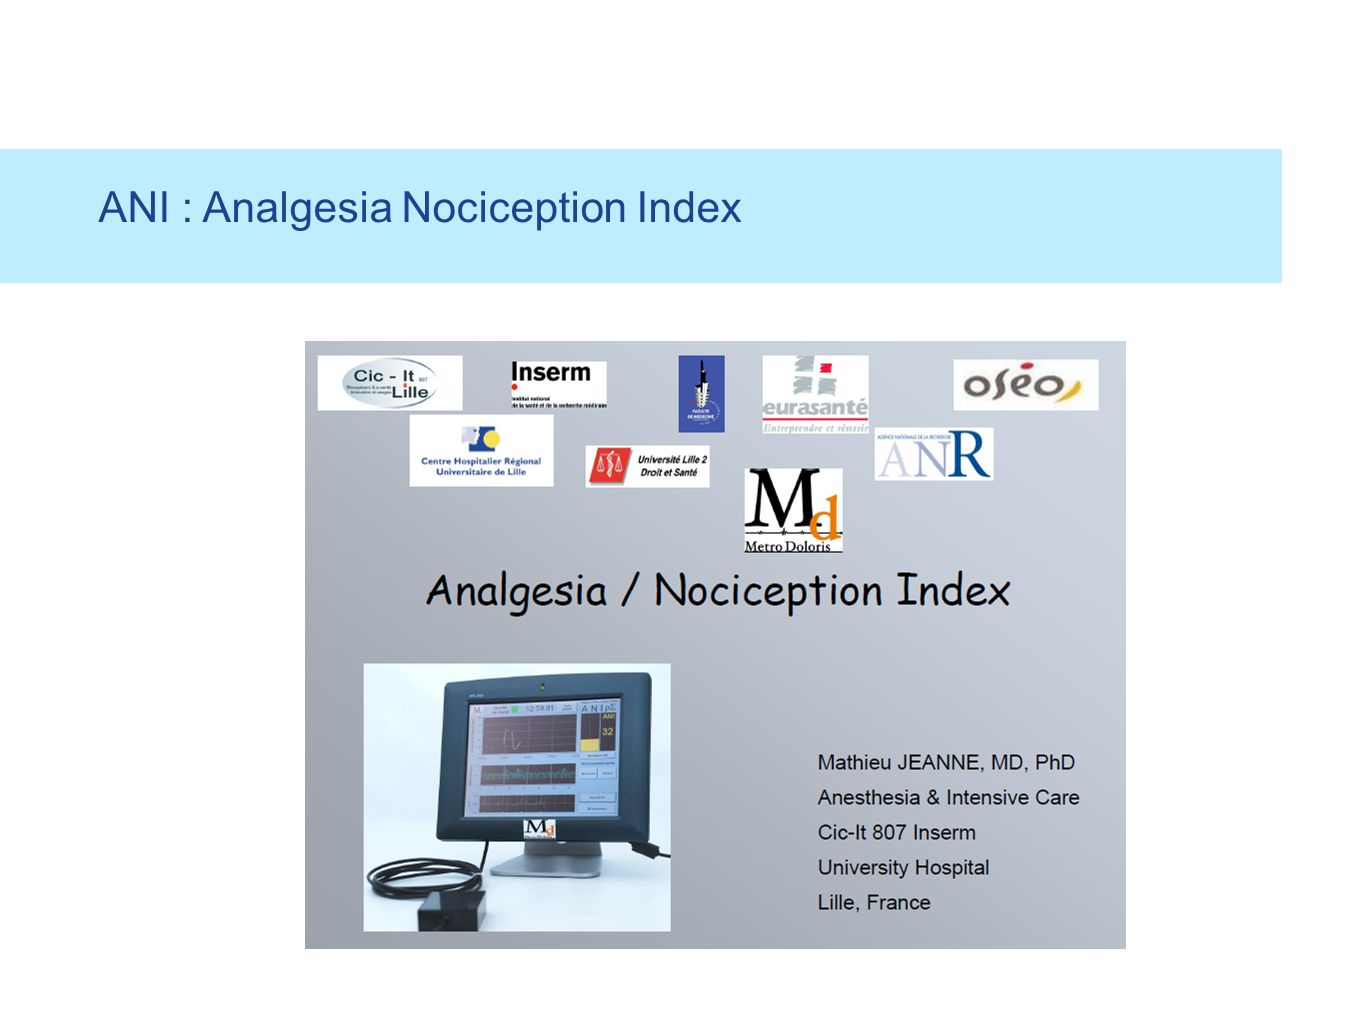 ANI : Analgesia Nociception Index